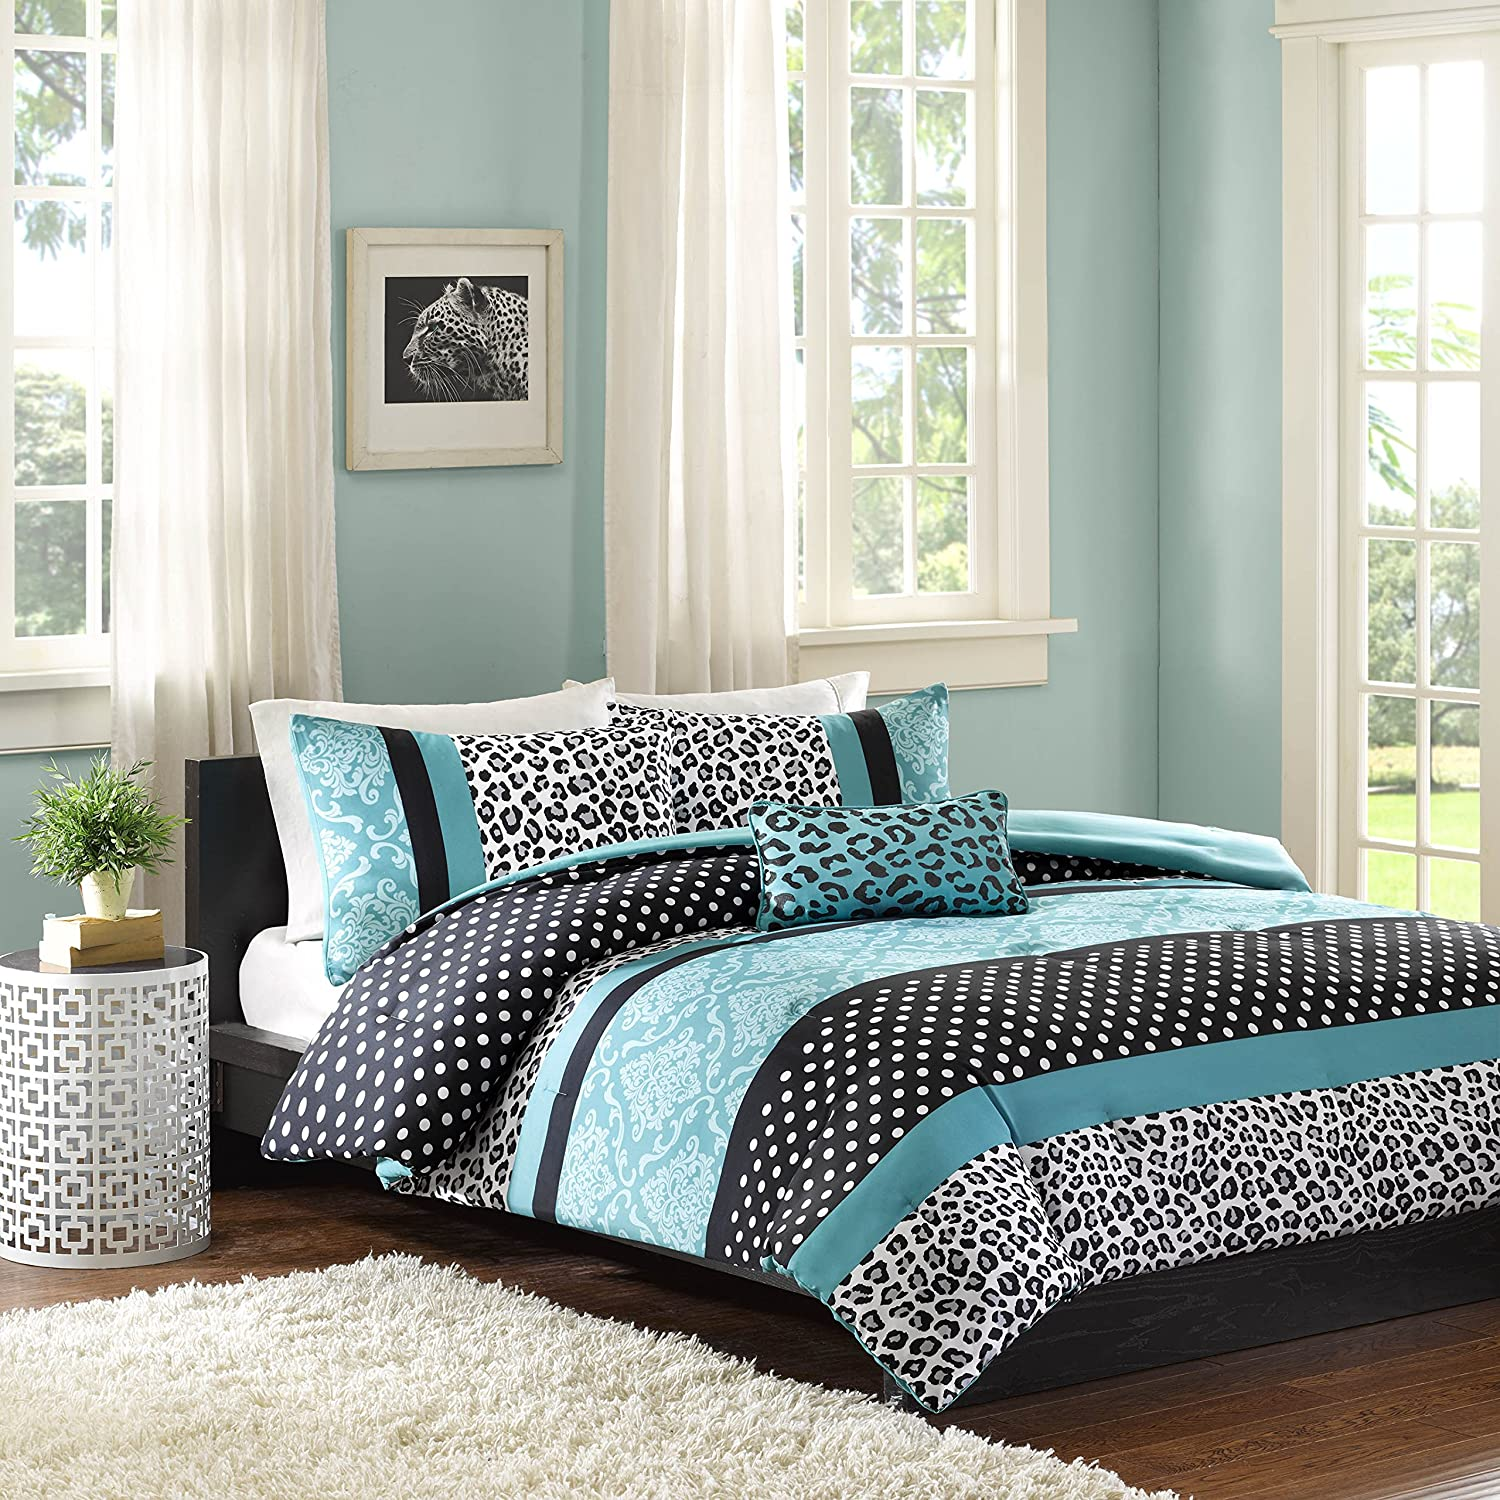 hello no cal quilt sheets white then comforter sets king set full printed duvet tremendous queen size majestic floral cover teal bedspread twin us doona little of bedspreads cotton class girls oversized tencel kitty bed plain blue navy grey covers item target duvets and quilted bedding